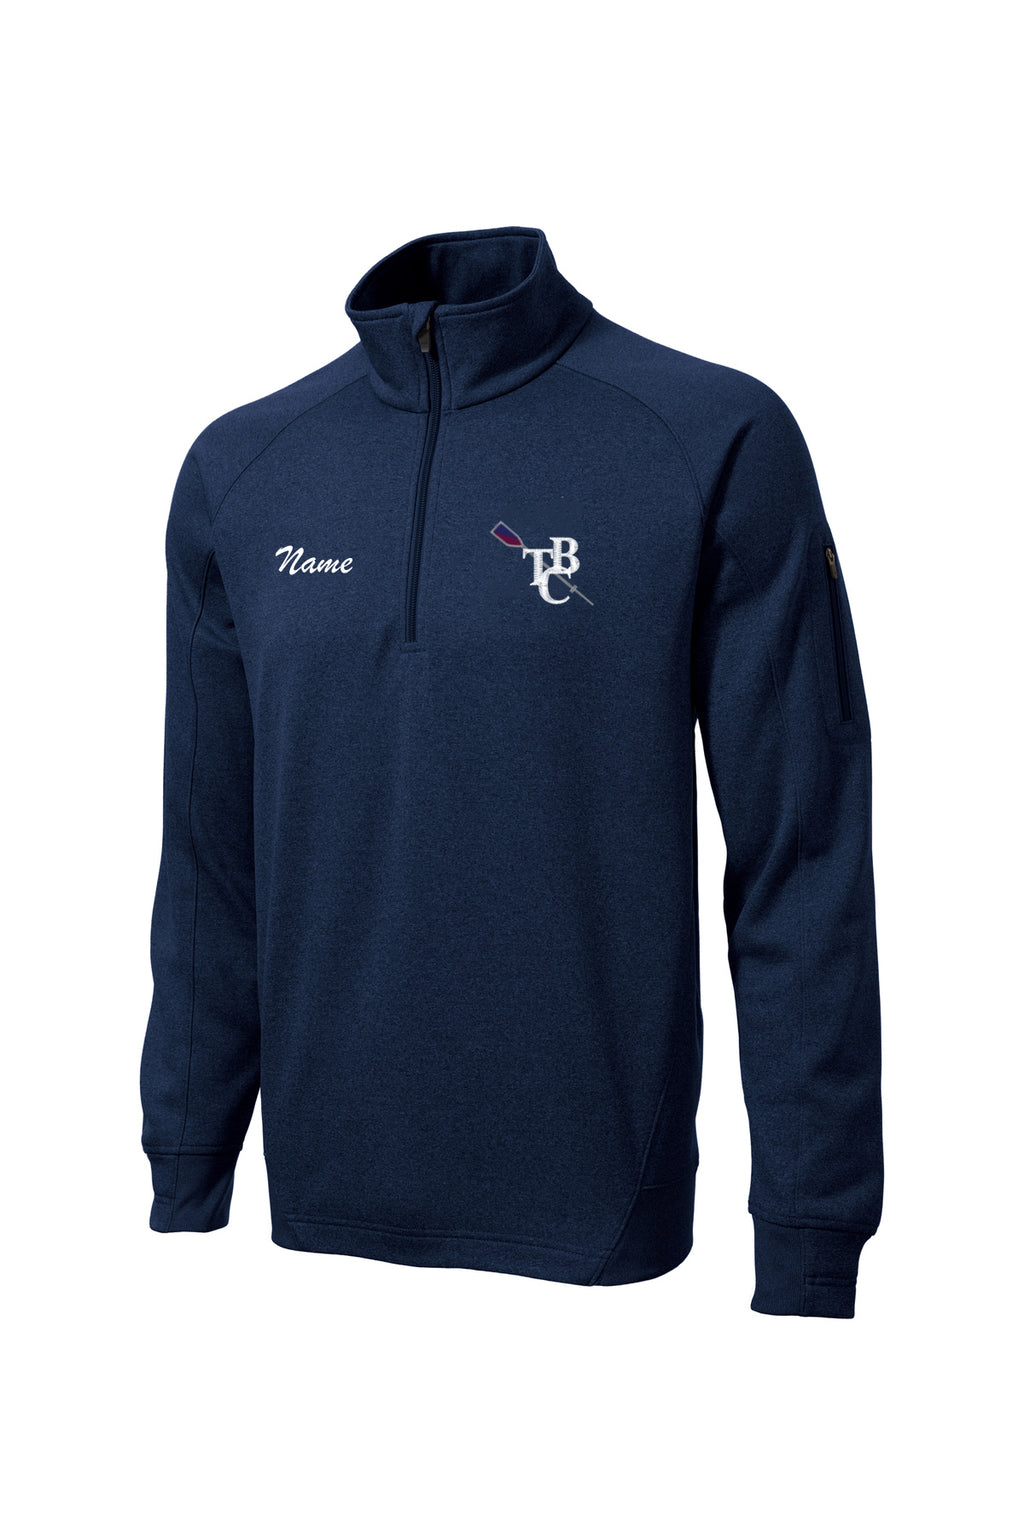 TBC Mens Performance Sweatshirt